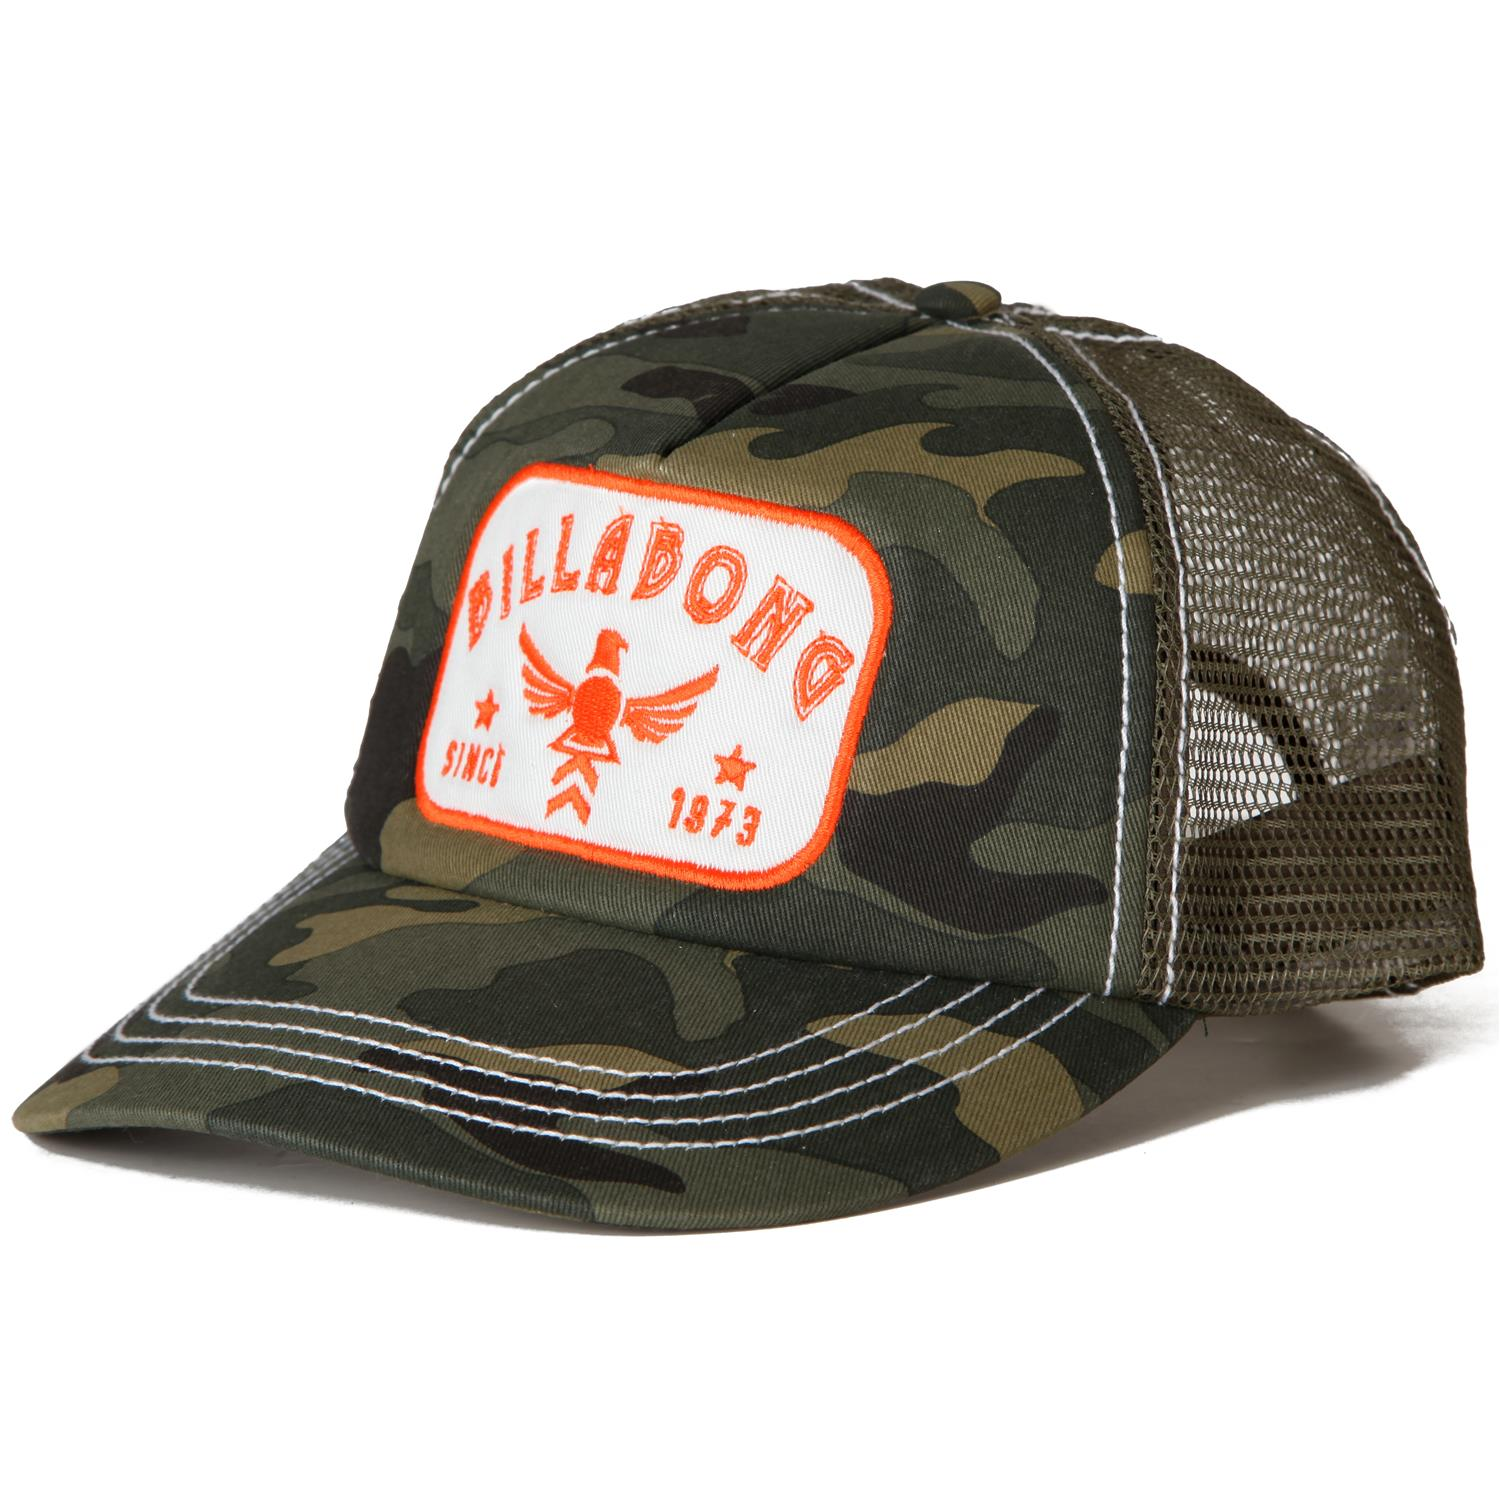 billabong dreamin on trucker hat s evo outlet